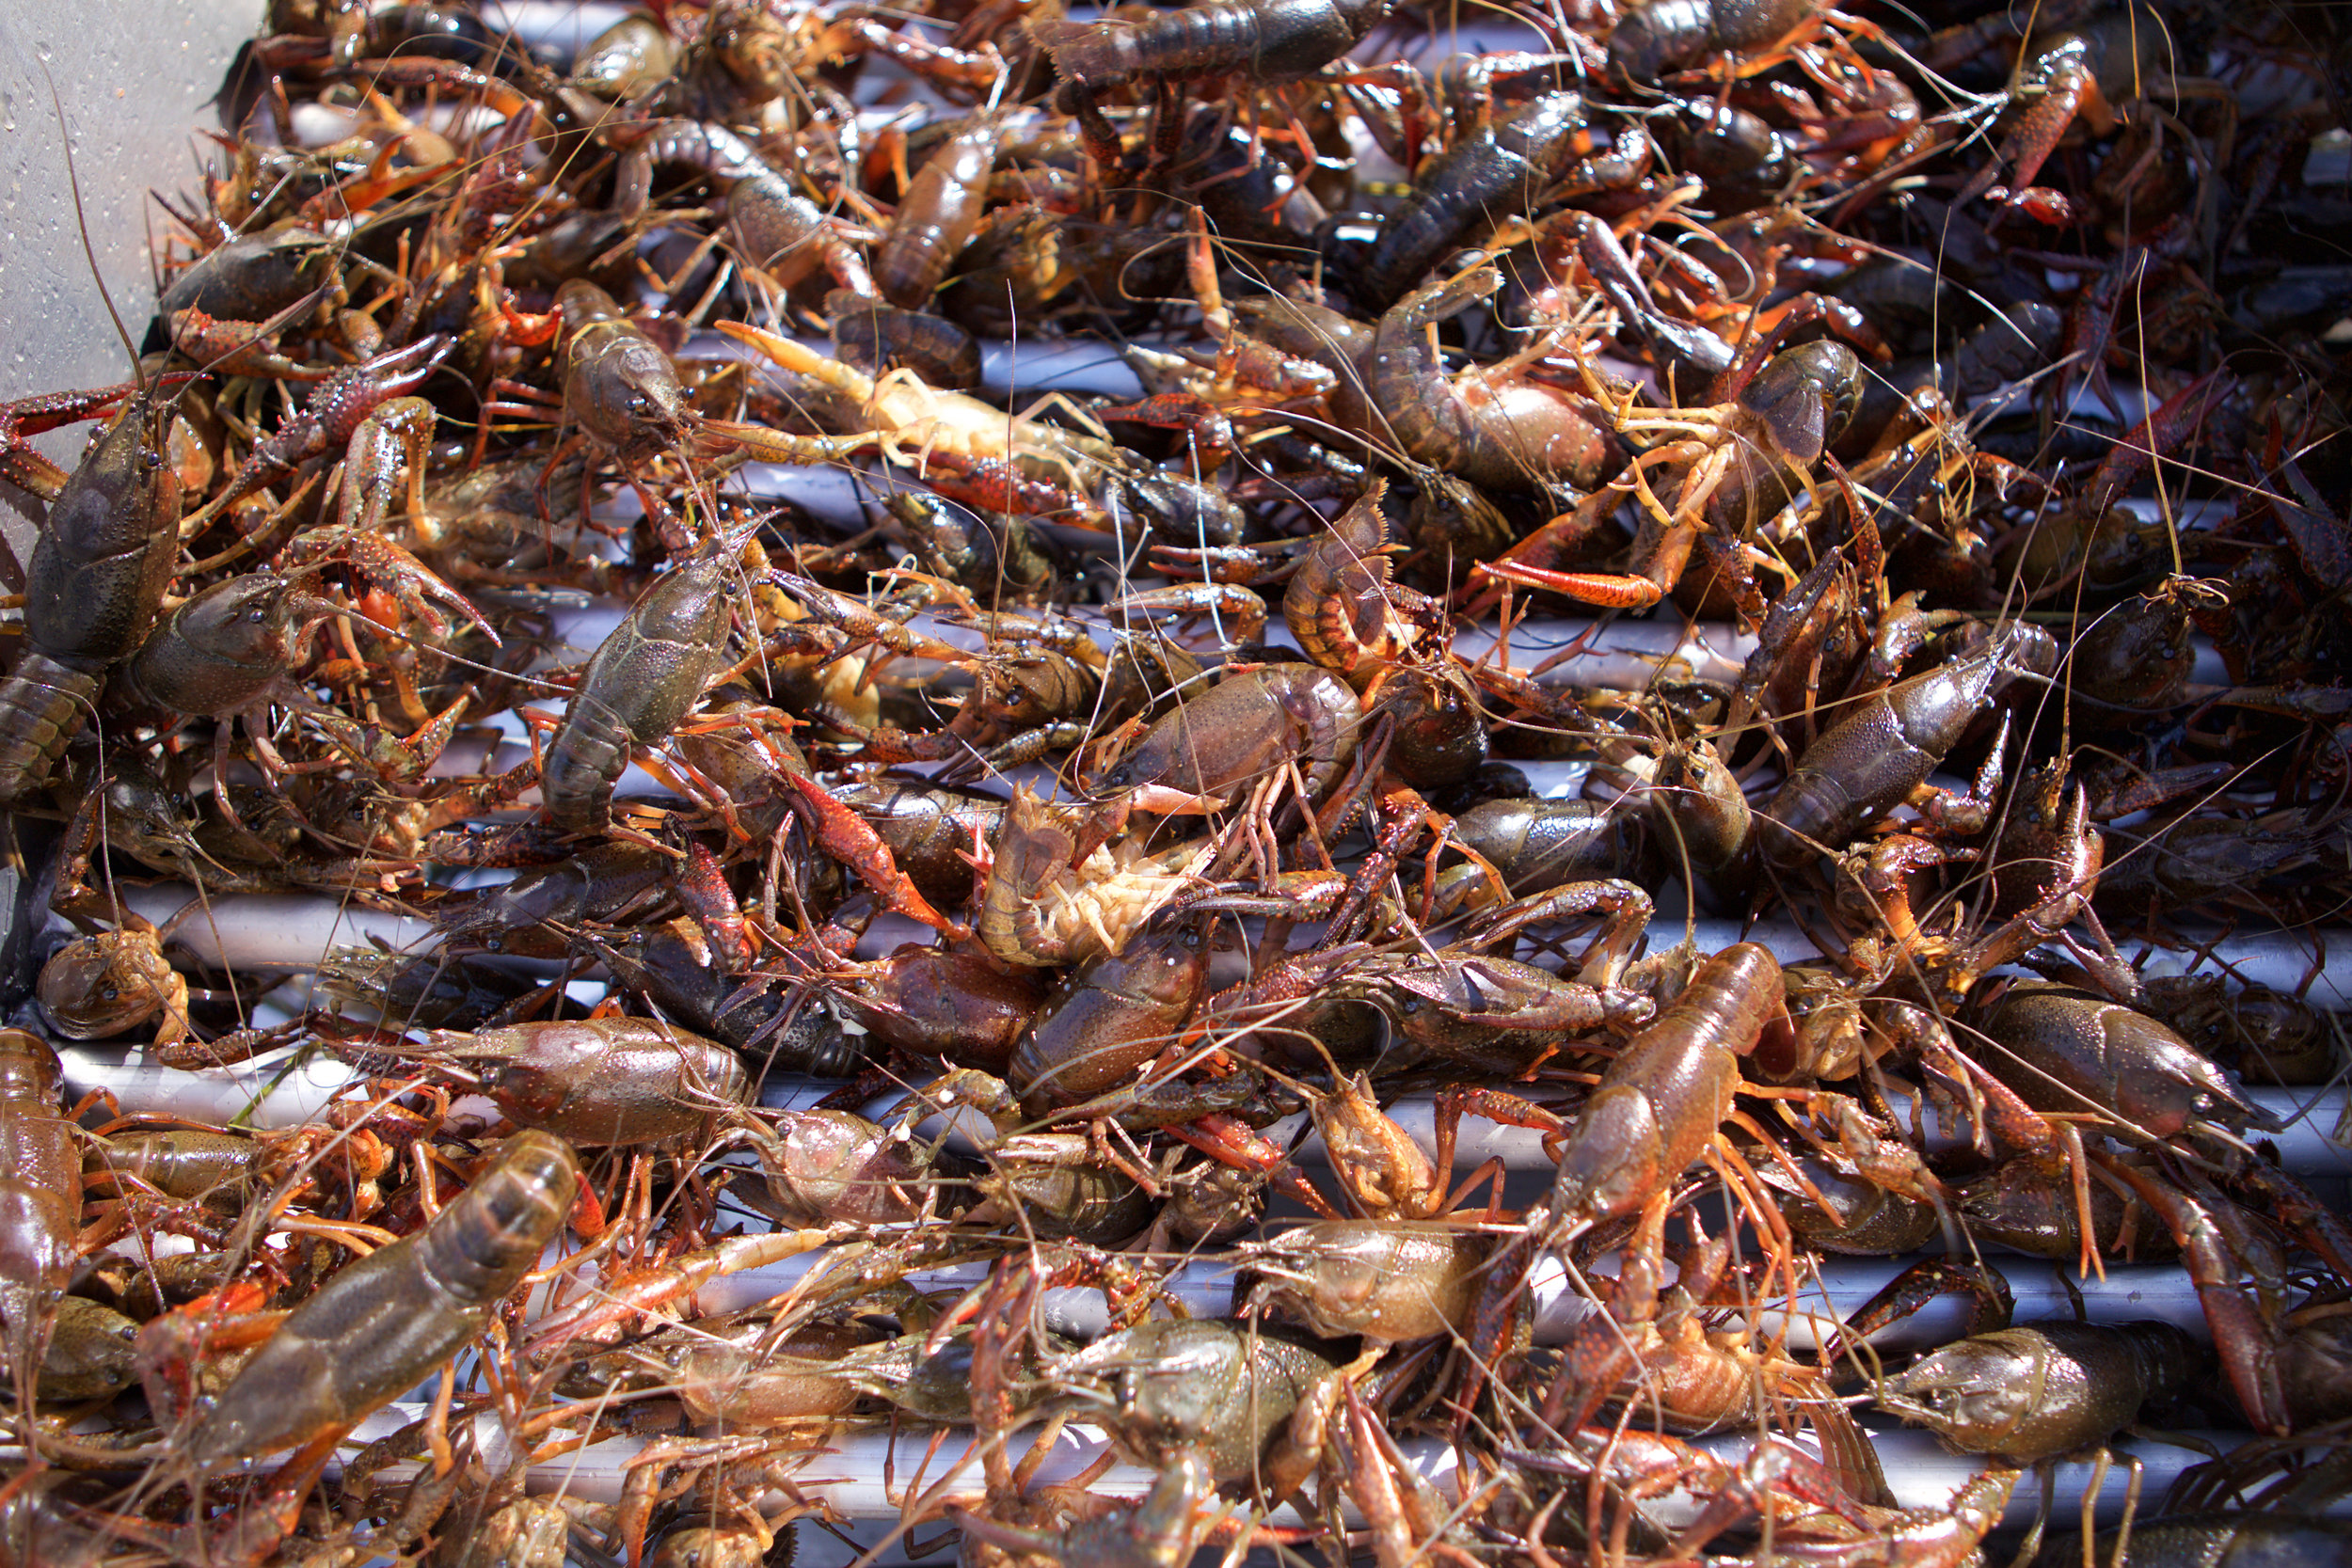 SquarespaceImage19-Crawfish-redwhitecrawfish.jpg